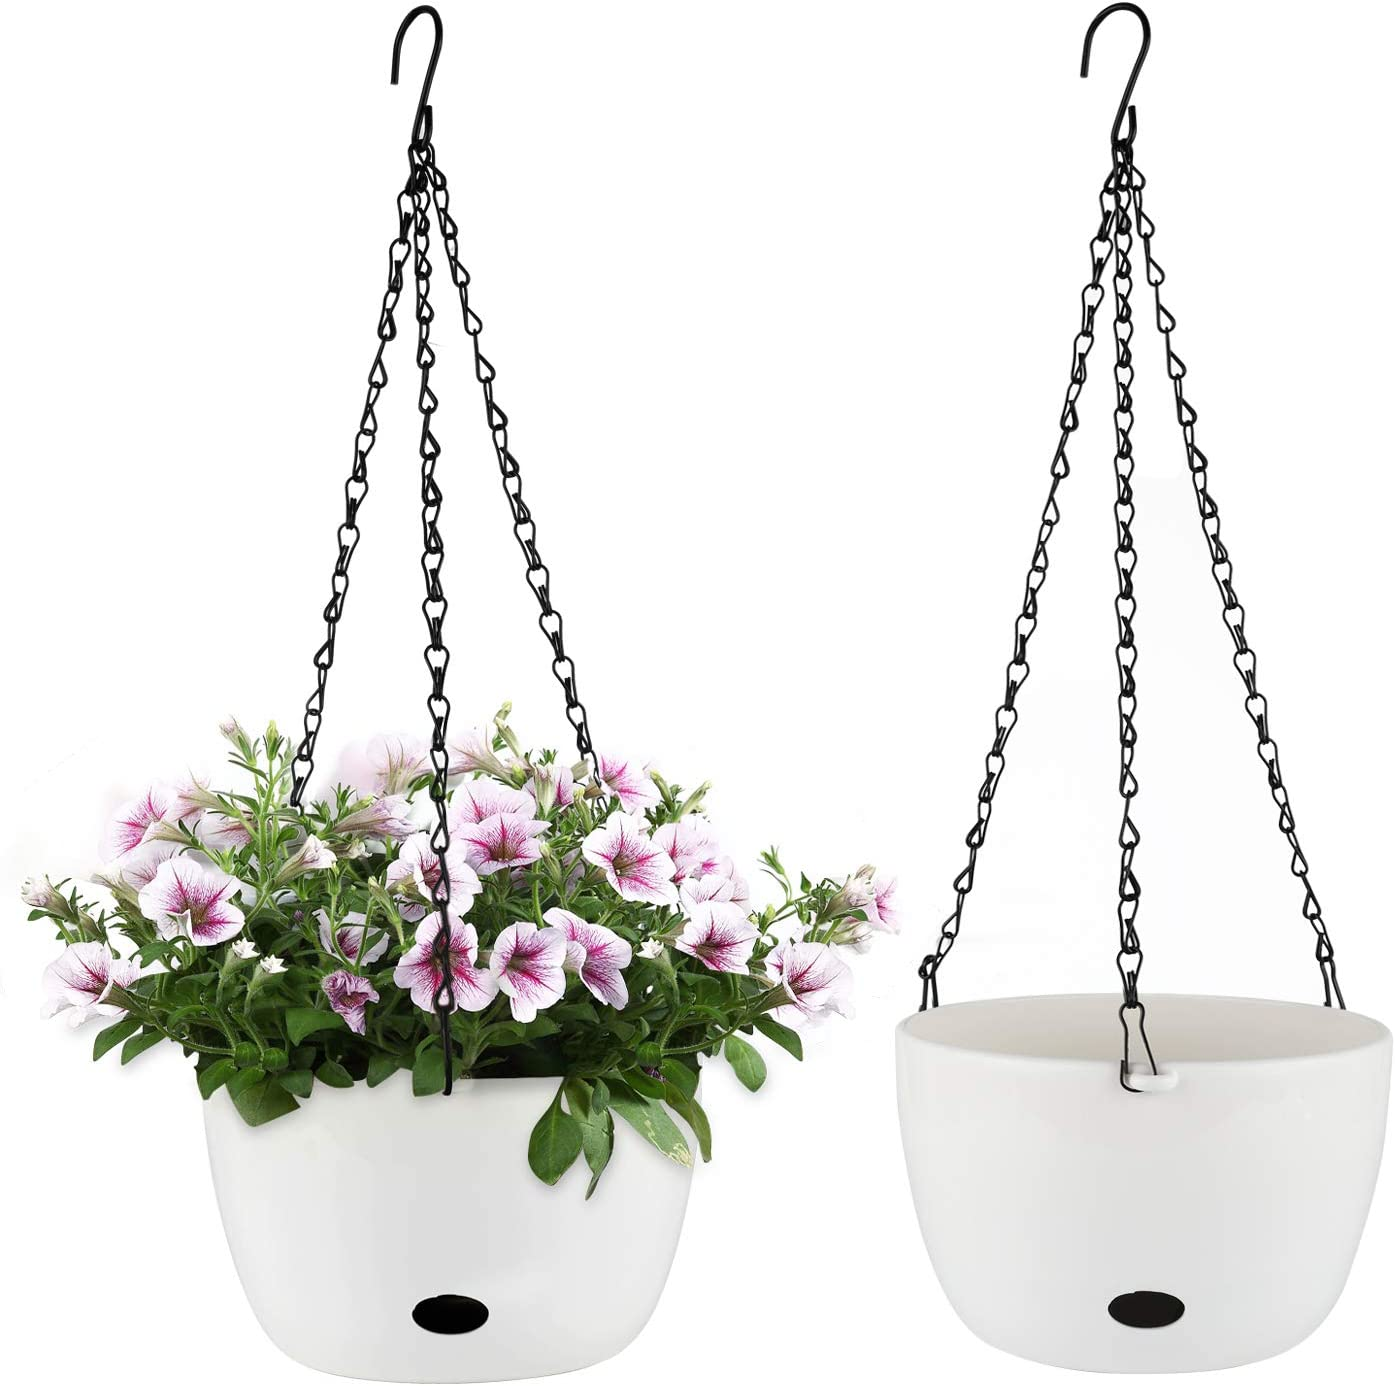 T4U Self Watering Hanging Planter Pot with Inch 8 supreme Weekly update Hole